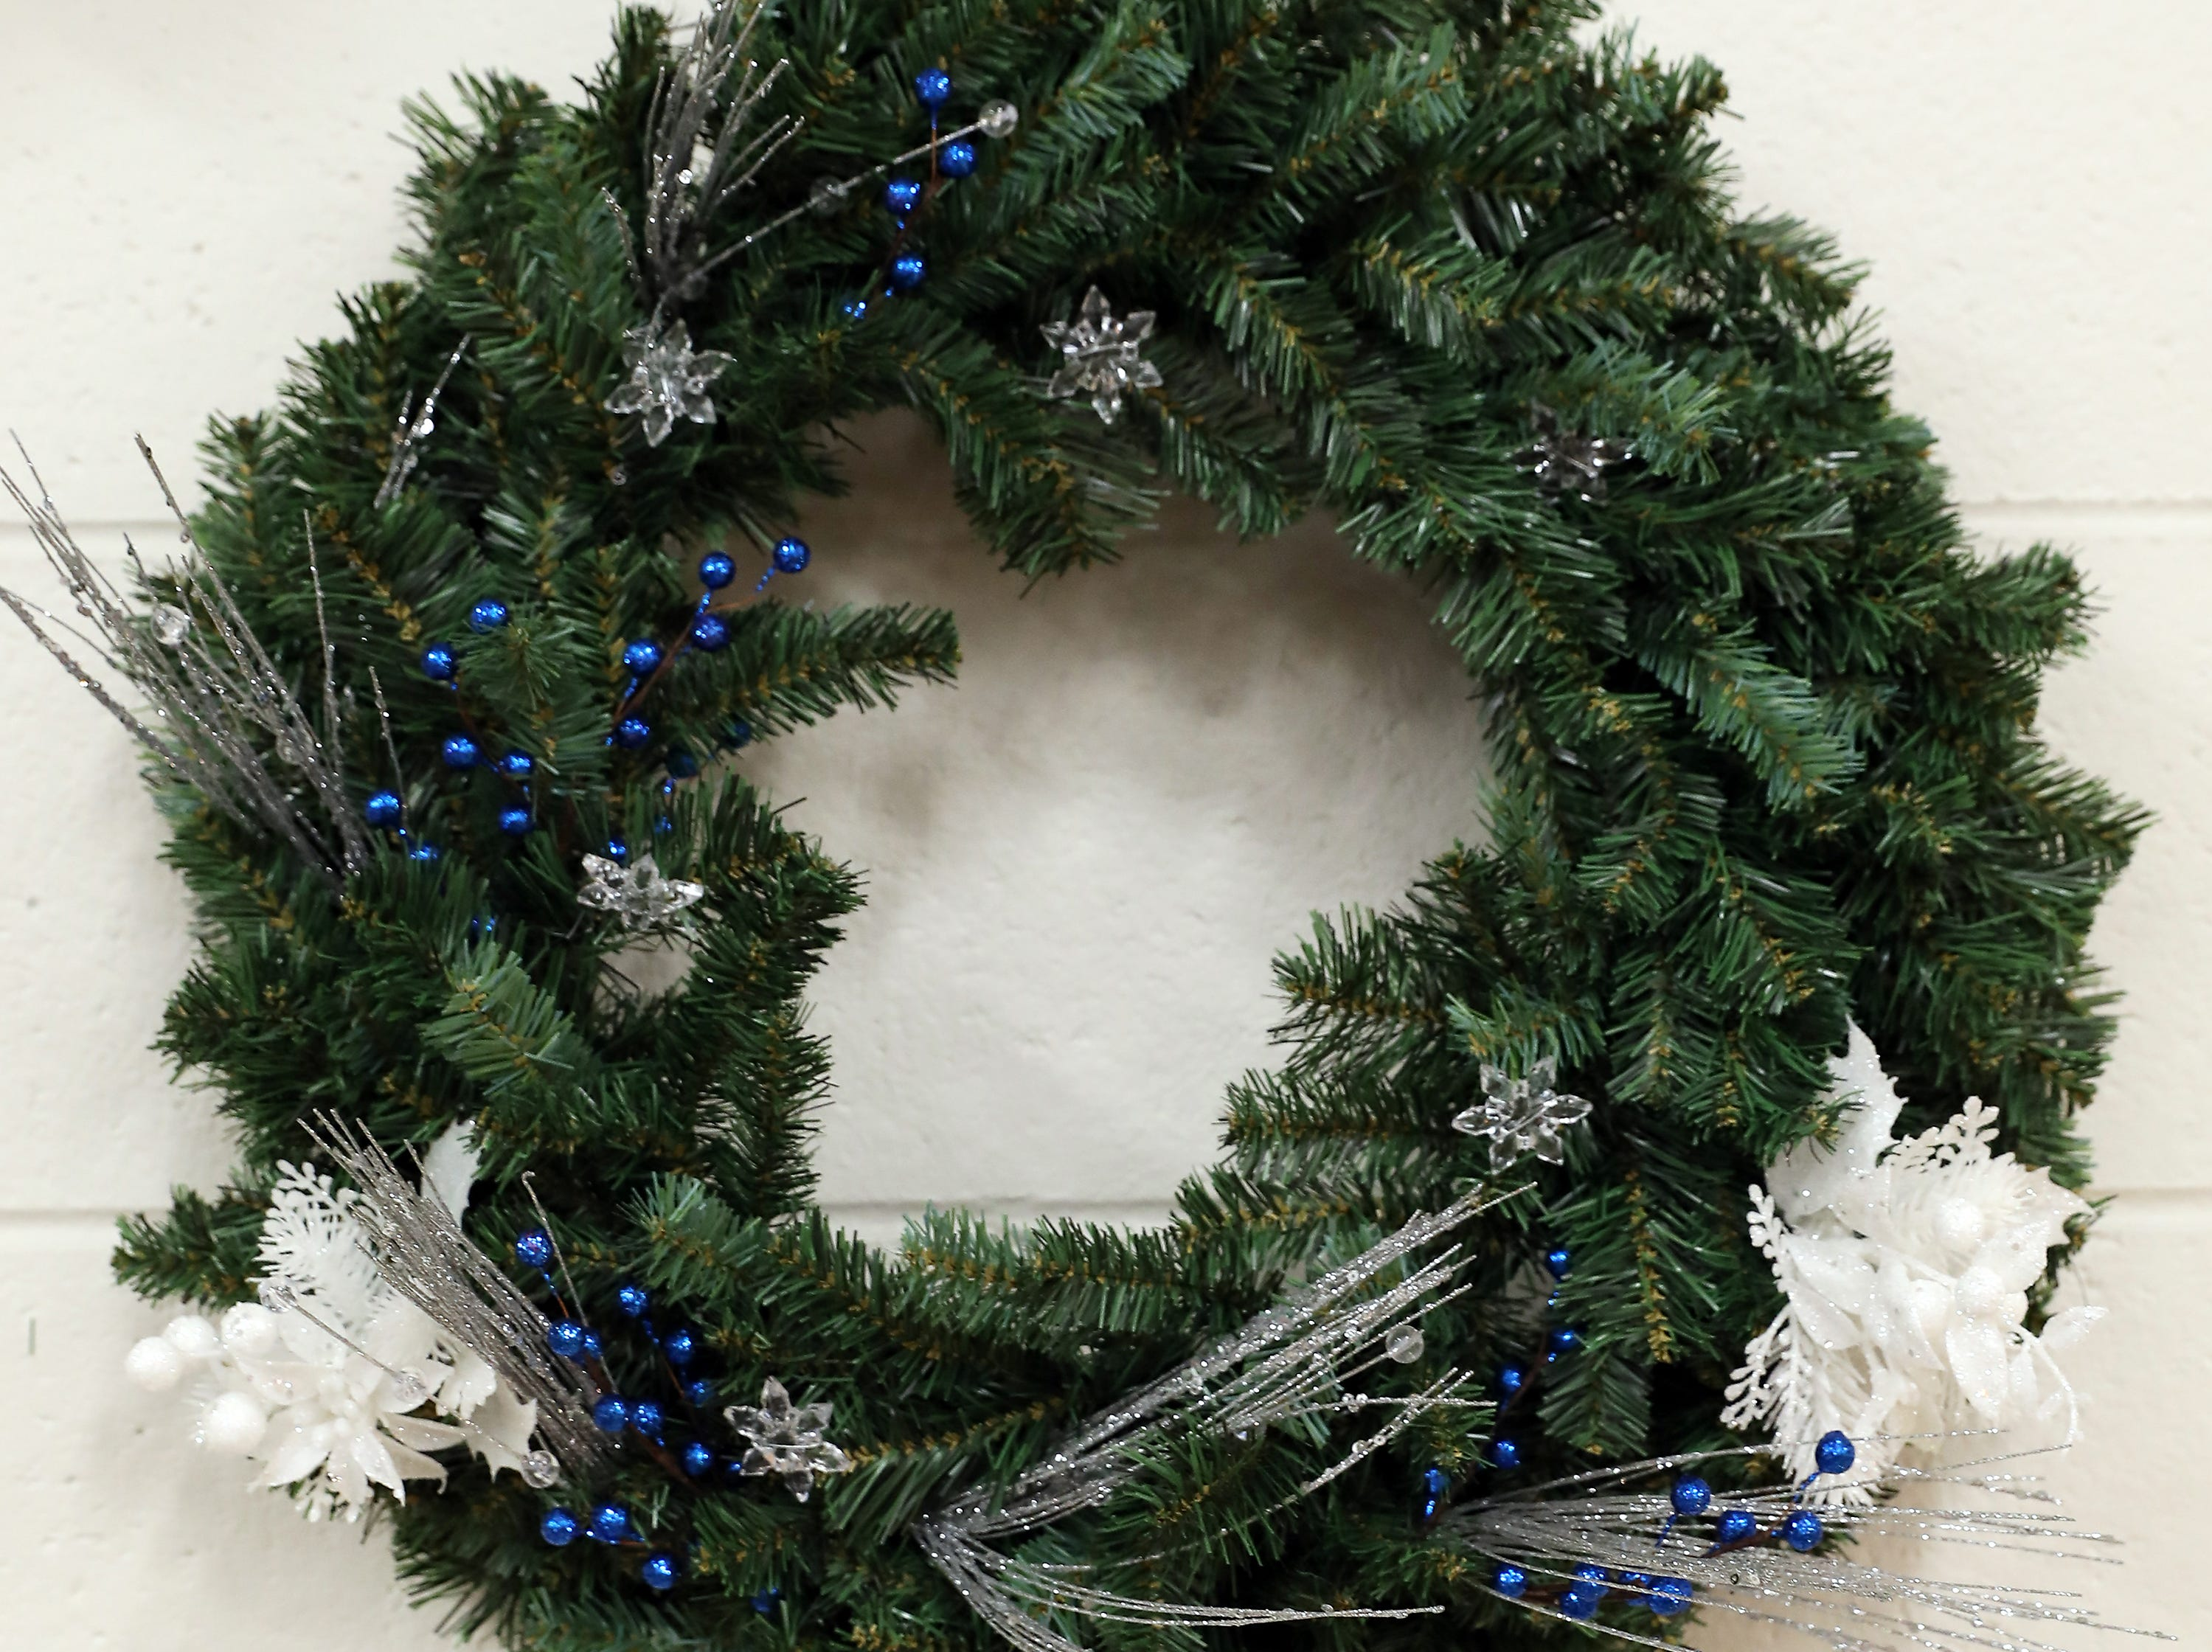 69	11:30 AM	Renner, Home of Zane Trace Players	Wreath	A Light and Fluffy Christmas	A festive holiday wreath		A couples patron package to the 2019 Renner Season and a piece of art by Shelley Tolliver.